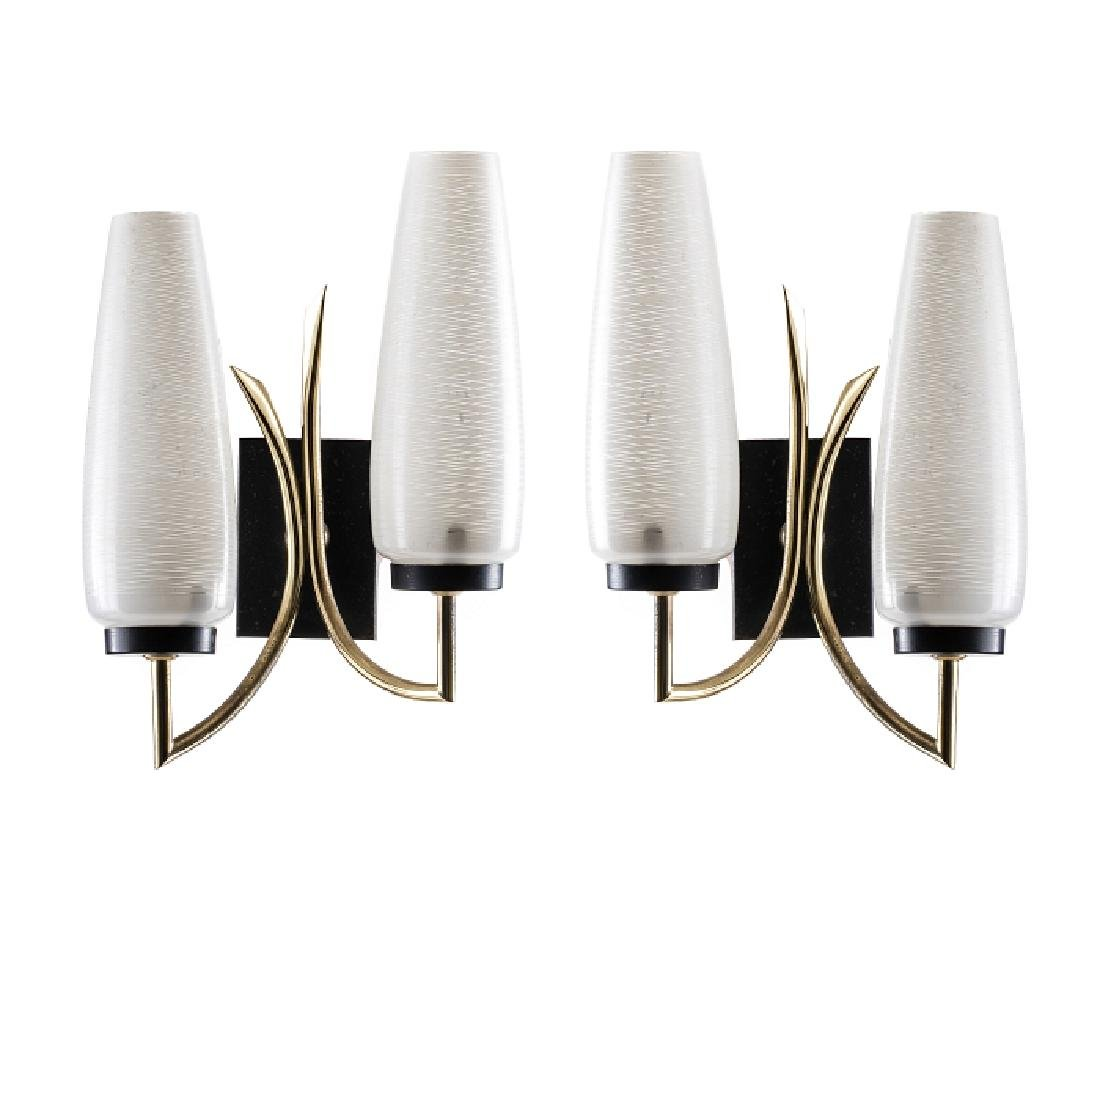 Pair of modernist wall appliques